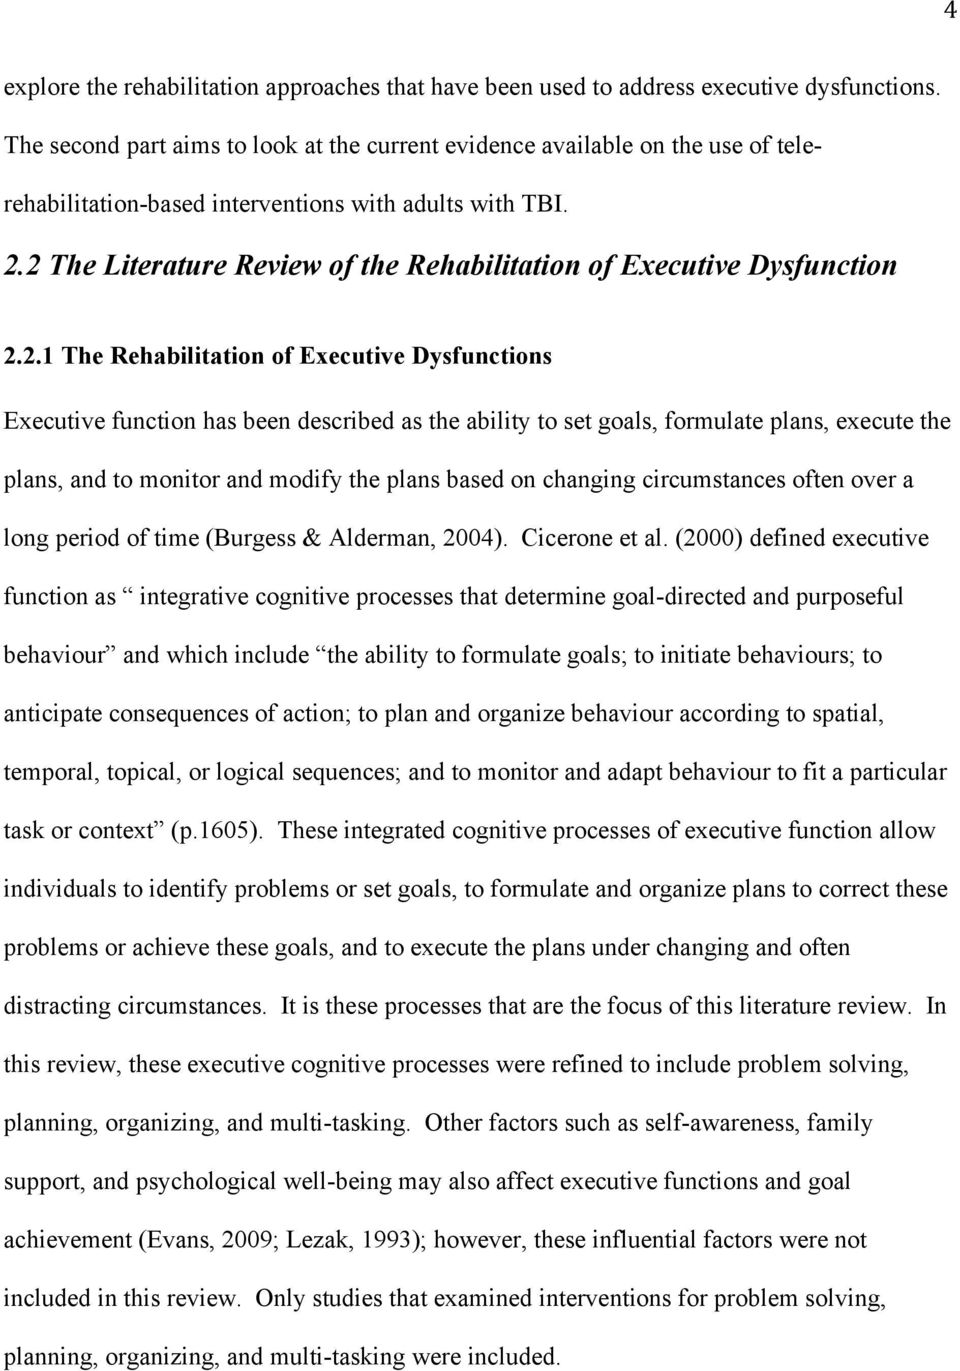 2 The Literature Review of the Rehabilitation of Executive Dysfunction 2.2.1 The Rehabilitation of Executive Dysfunctions Executive function has been described as the ability to set goals, formulate